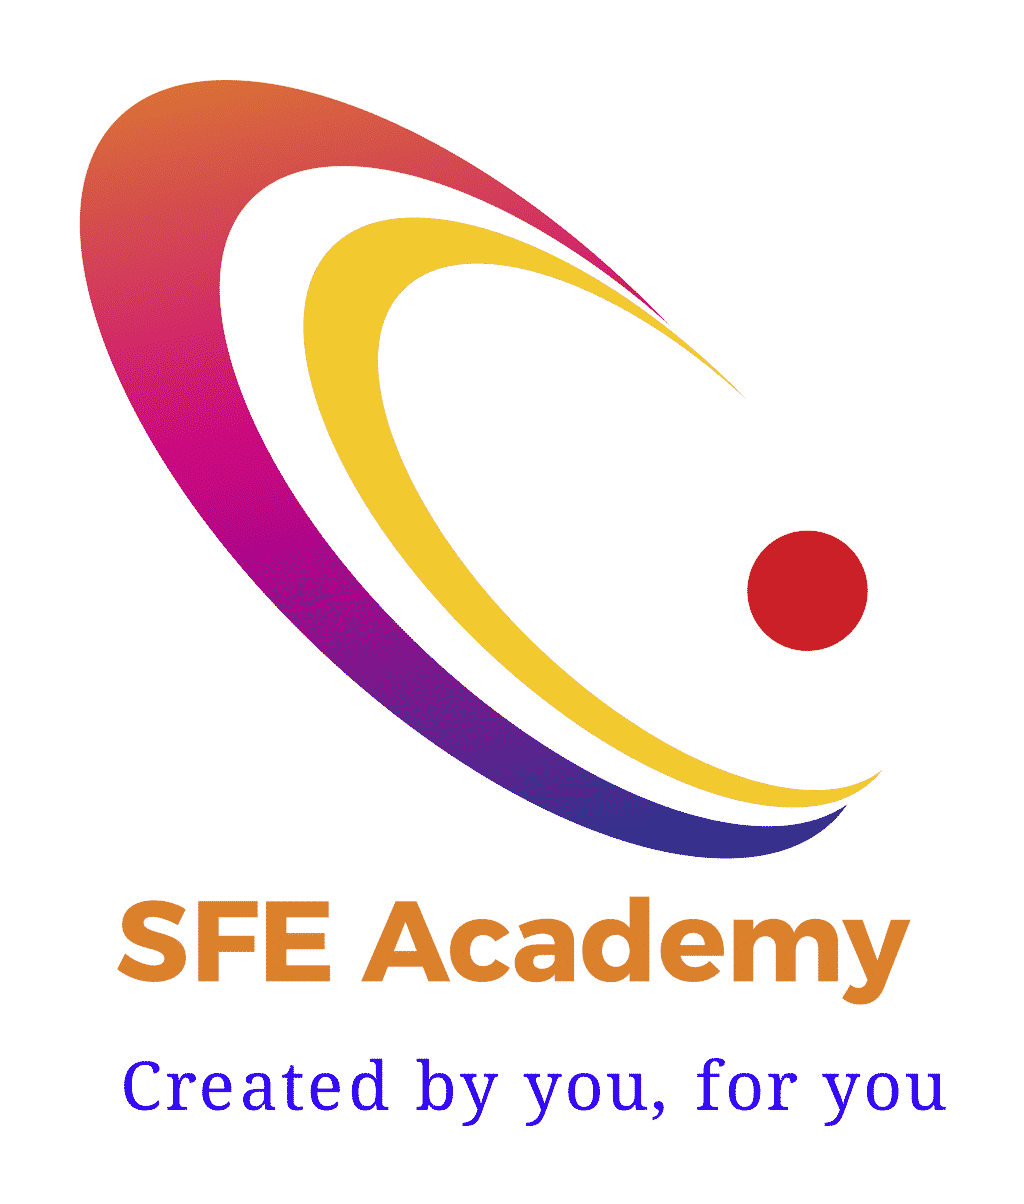 SFE Academy - Health and fitness courses designed by you.